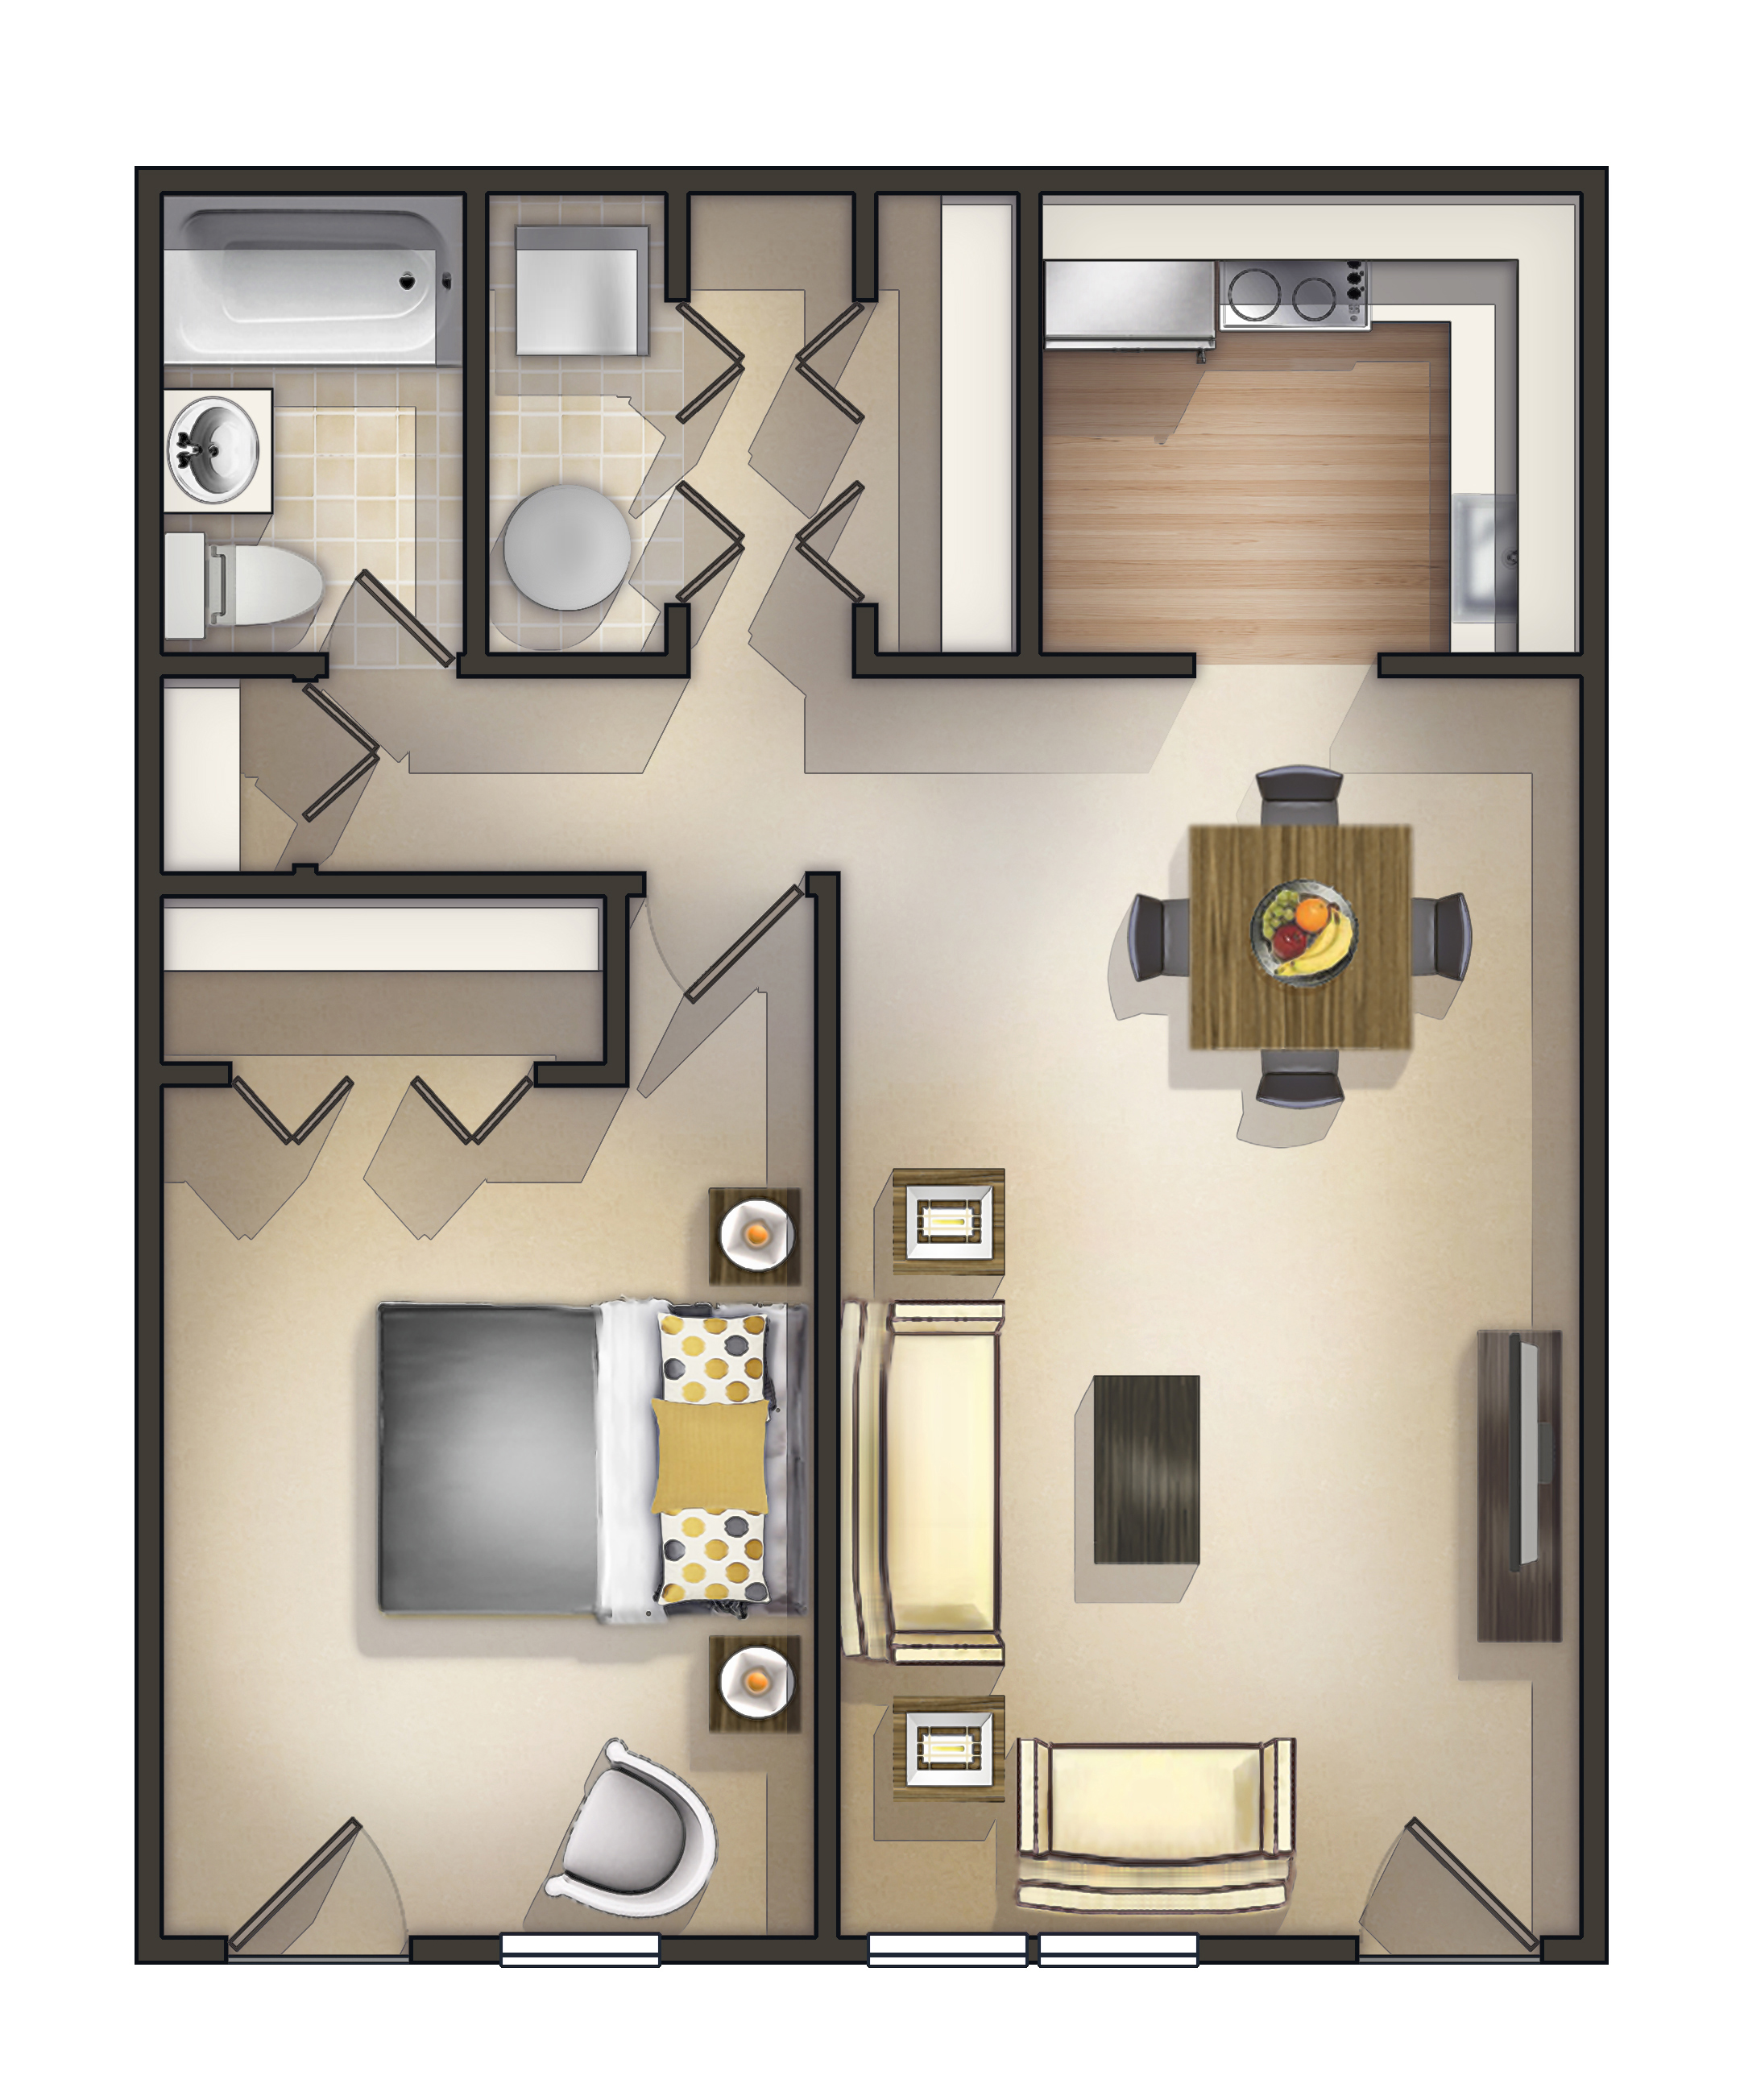 1 Bedroom Garden Apartment Floorplan